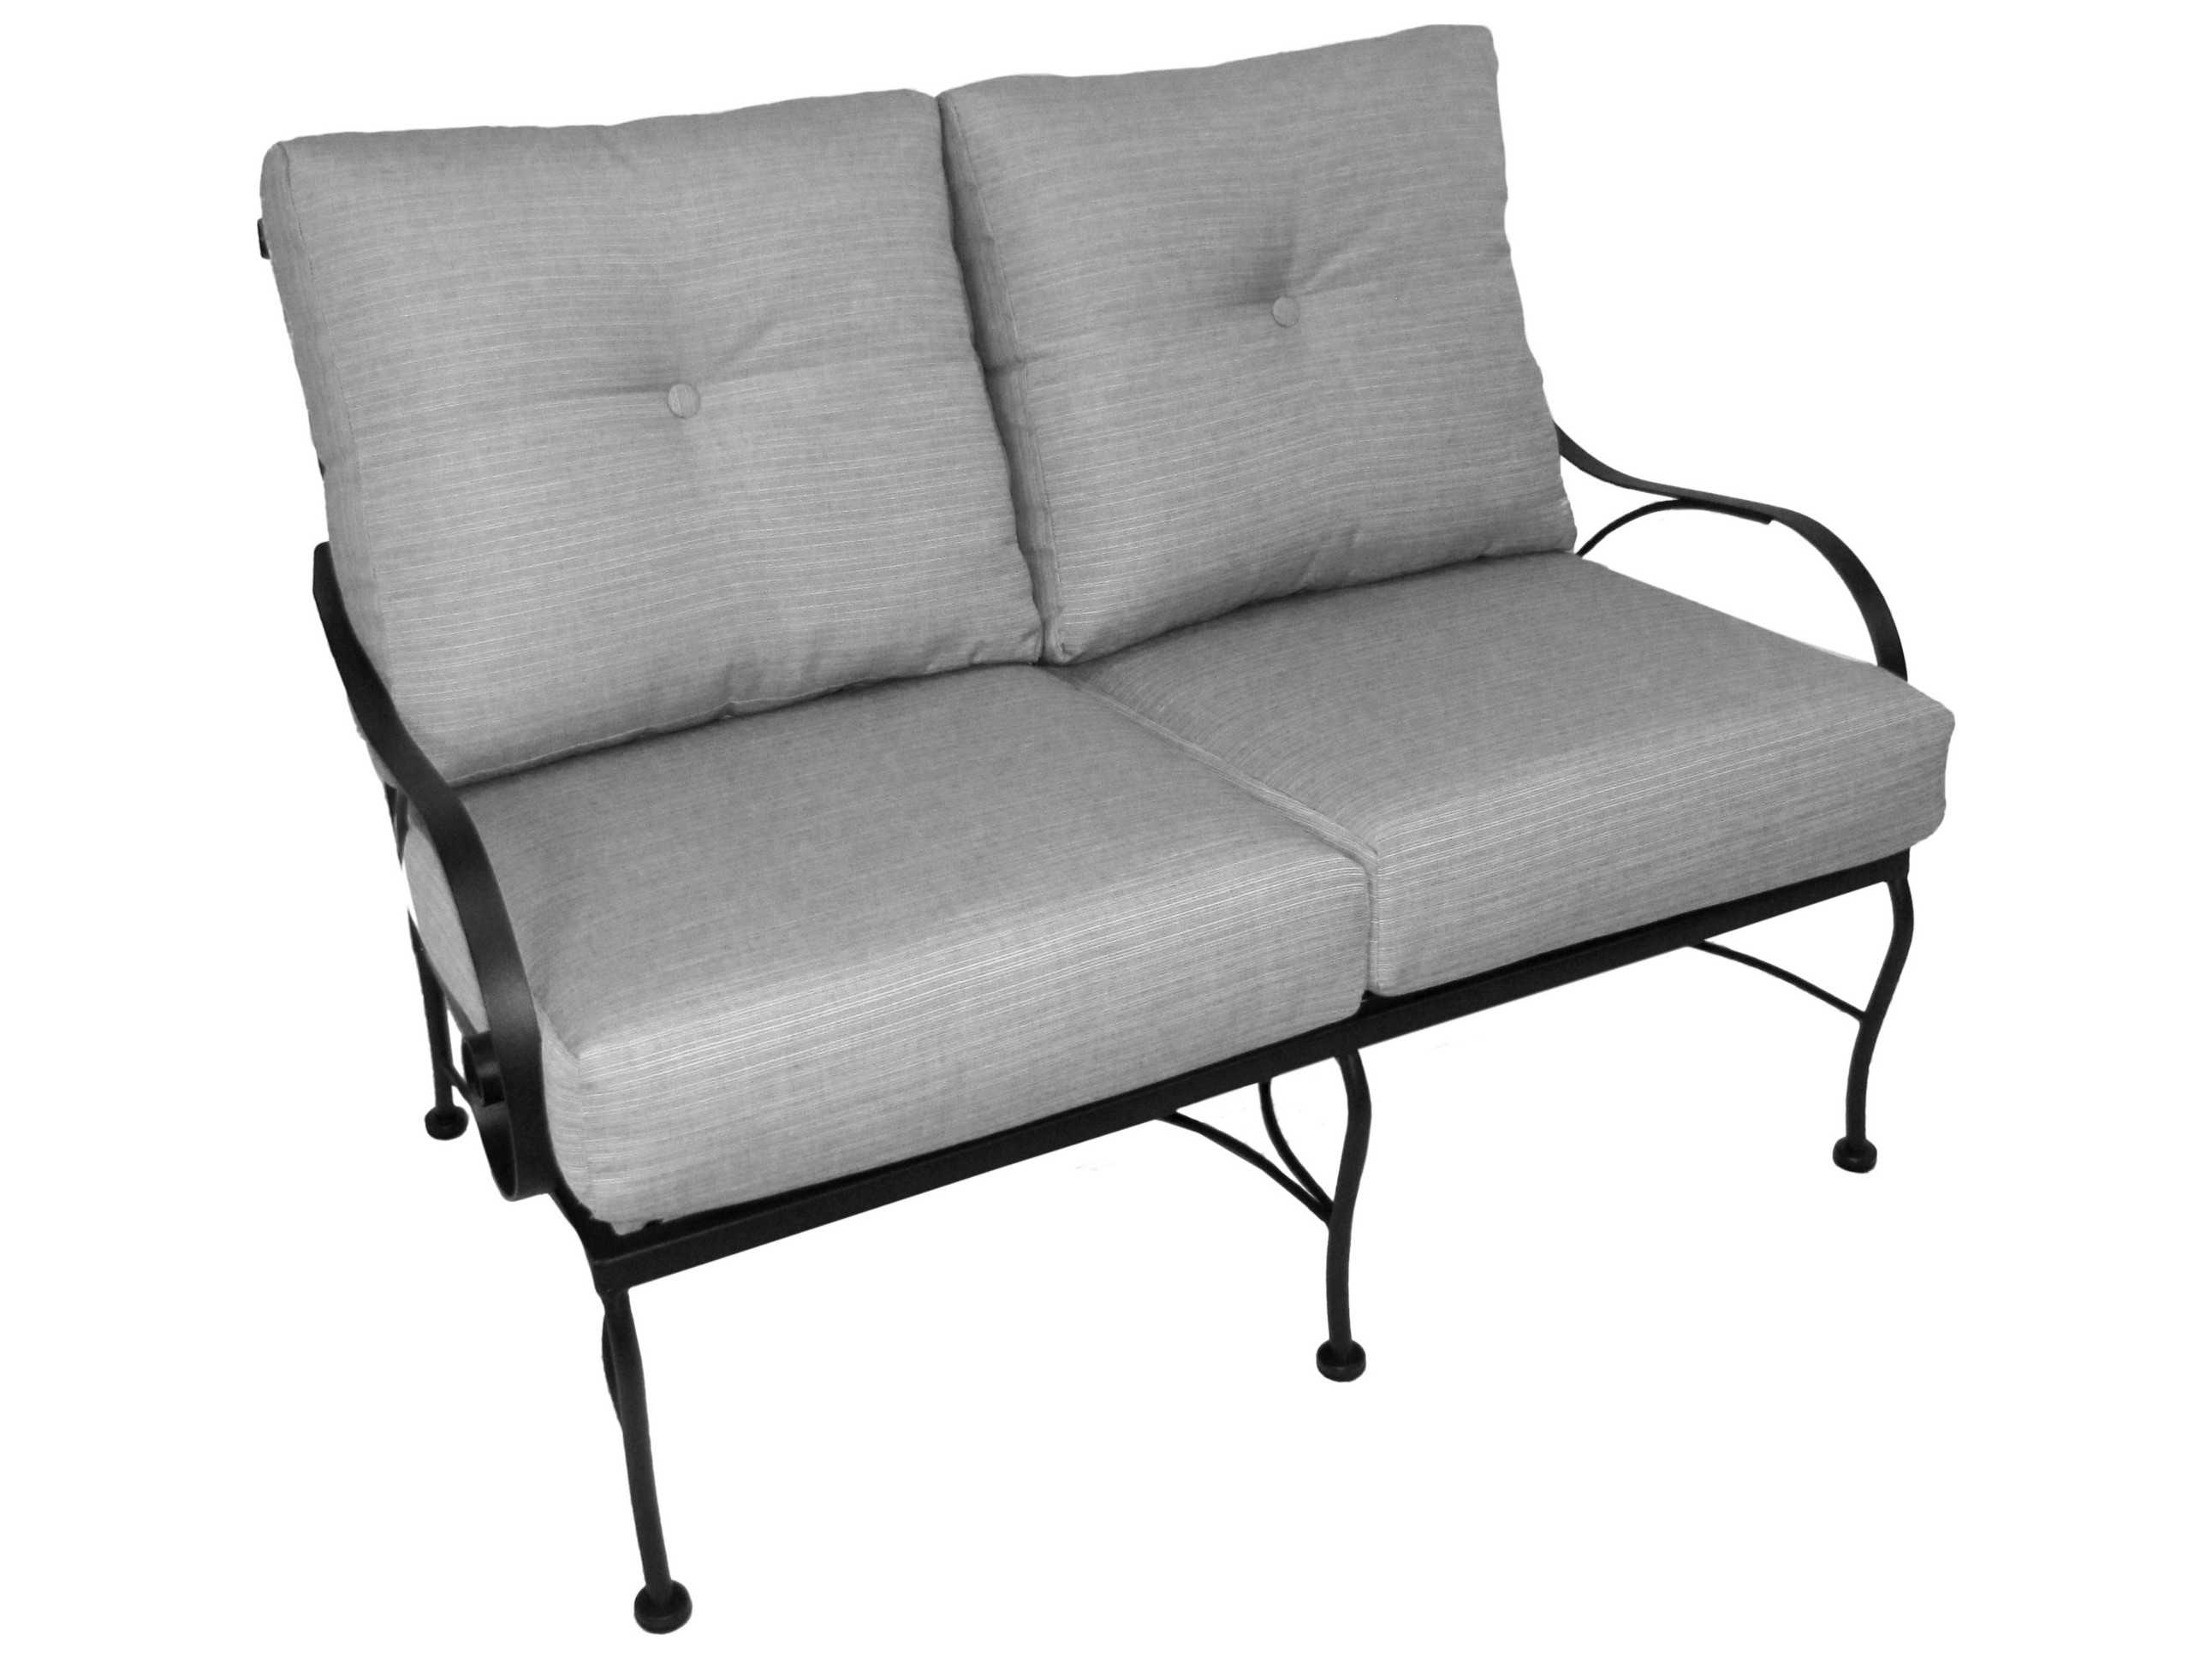 Meadowcraft Monticello Loveseat Replacement Cushions